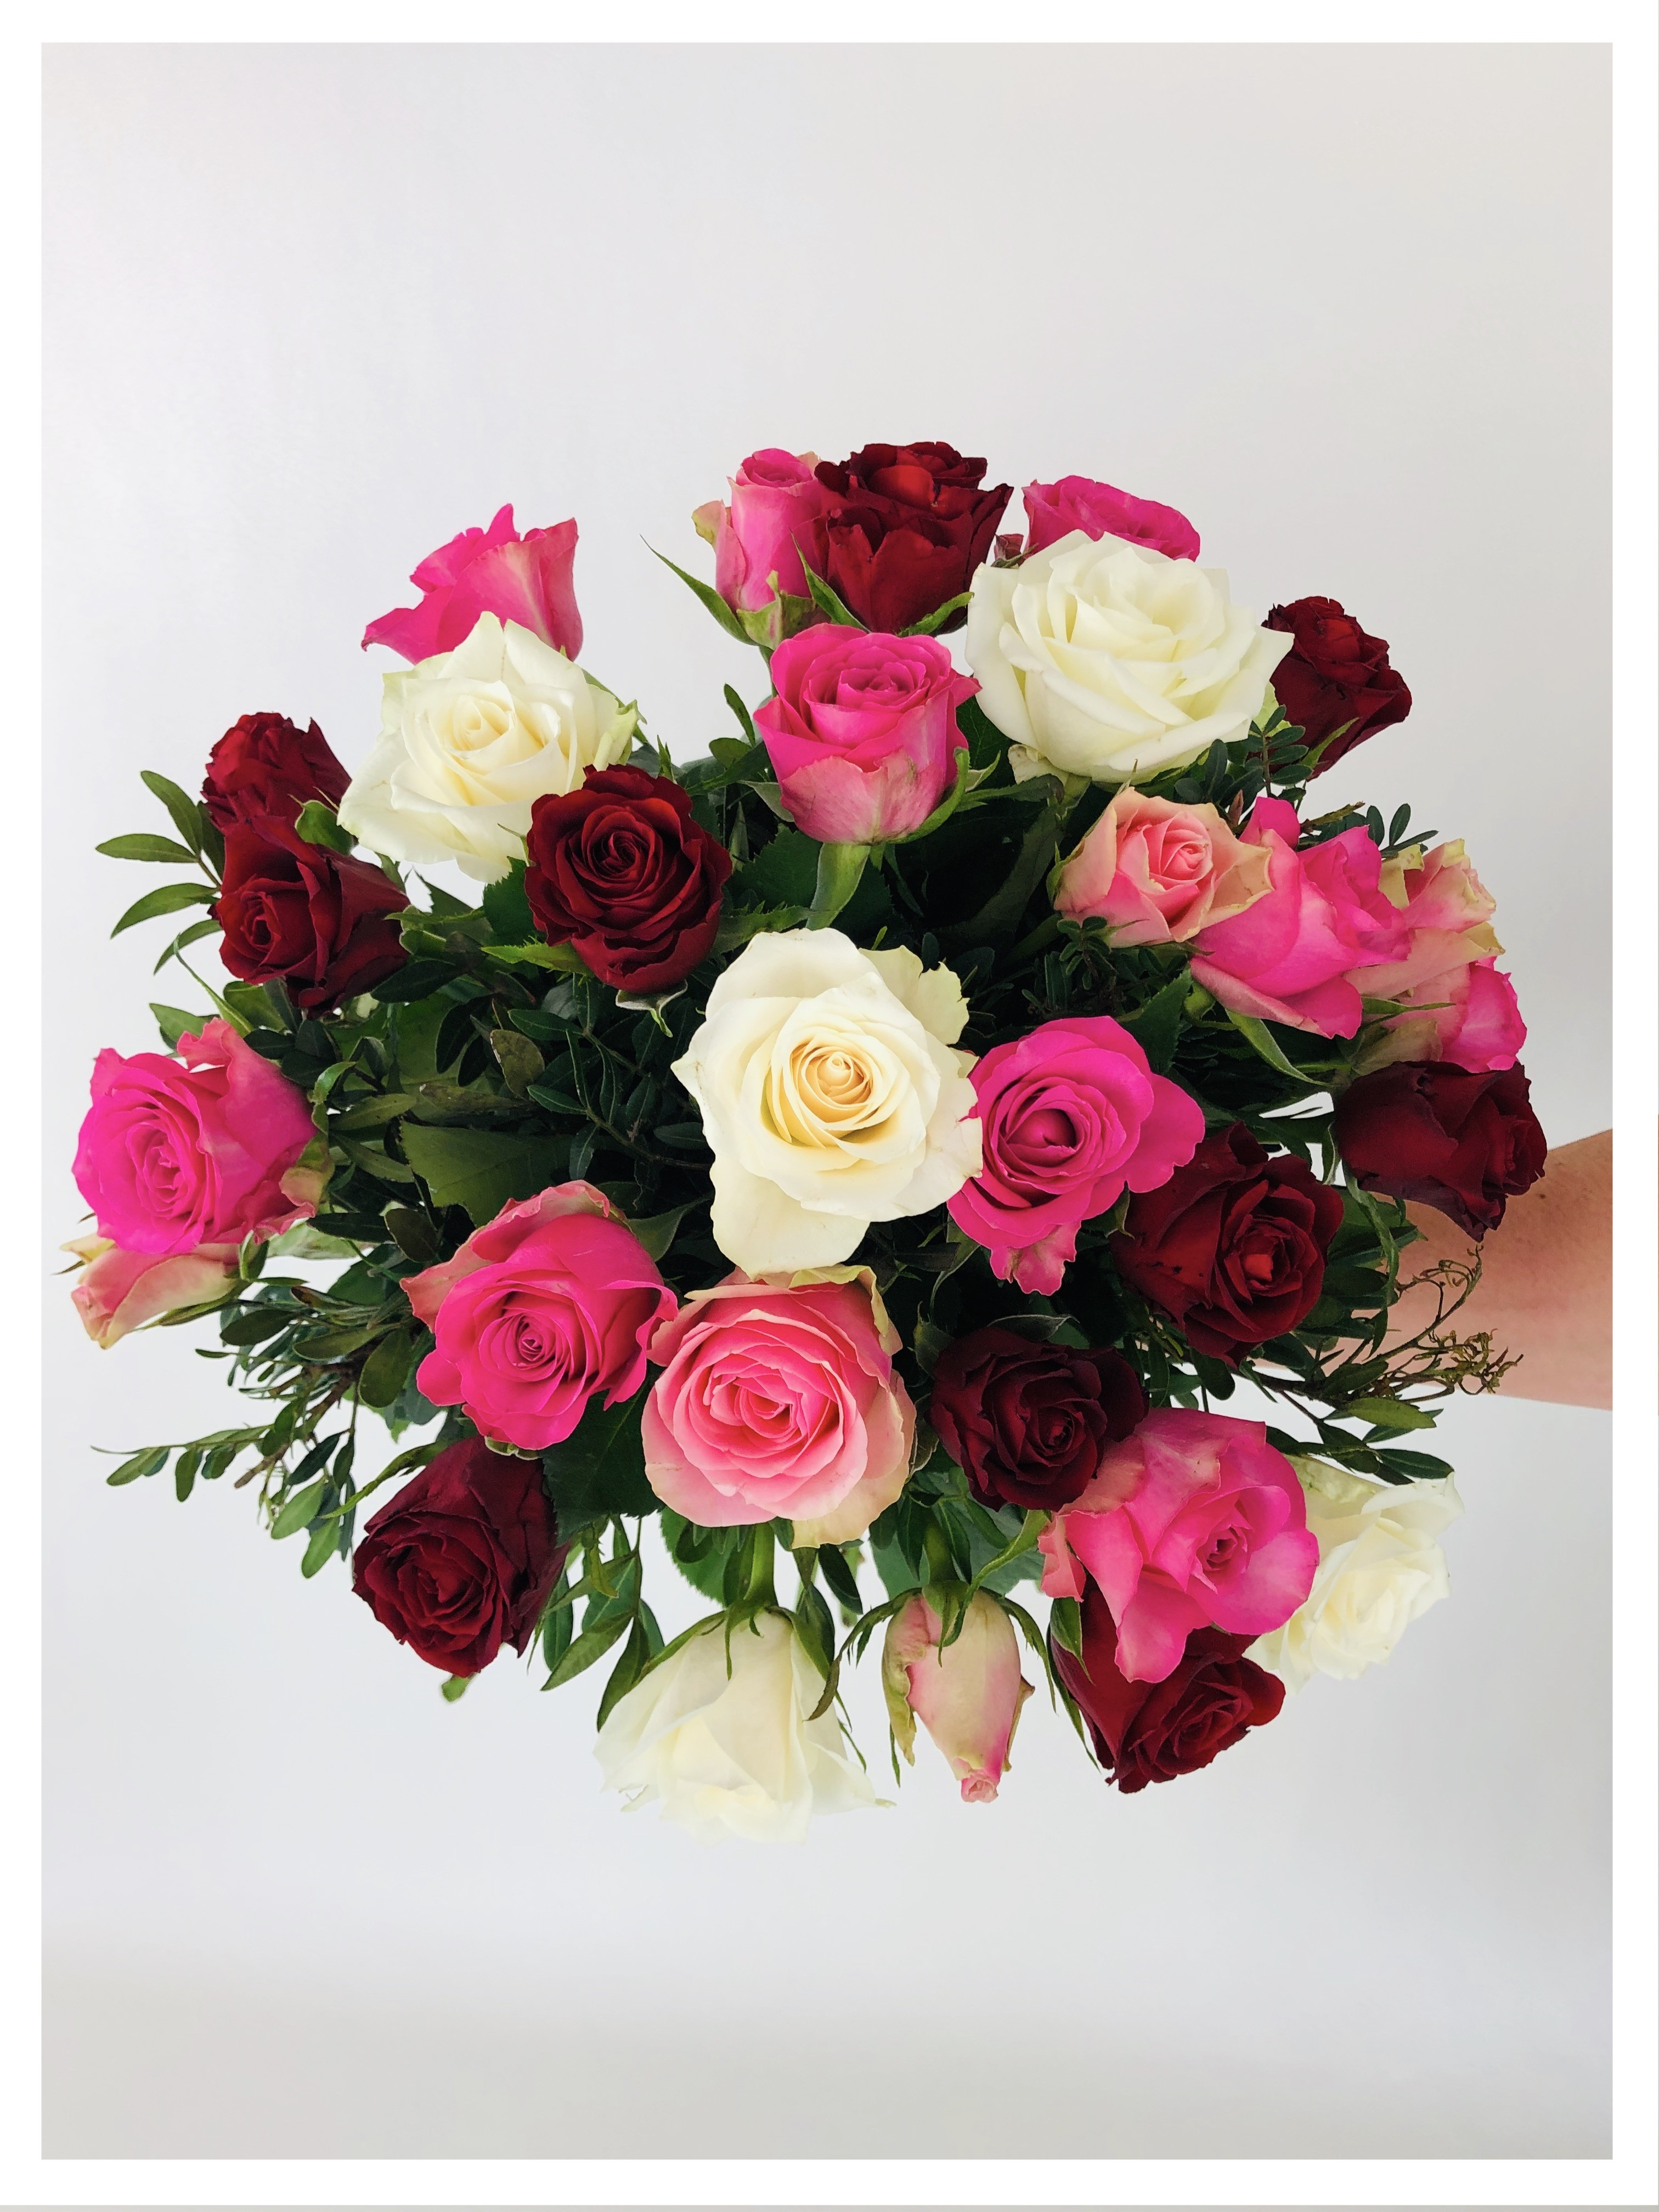 Bouquet rond - roses roses, rouges et blanches